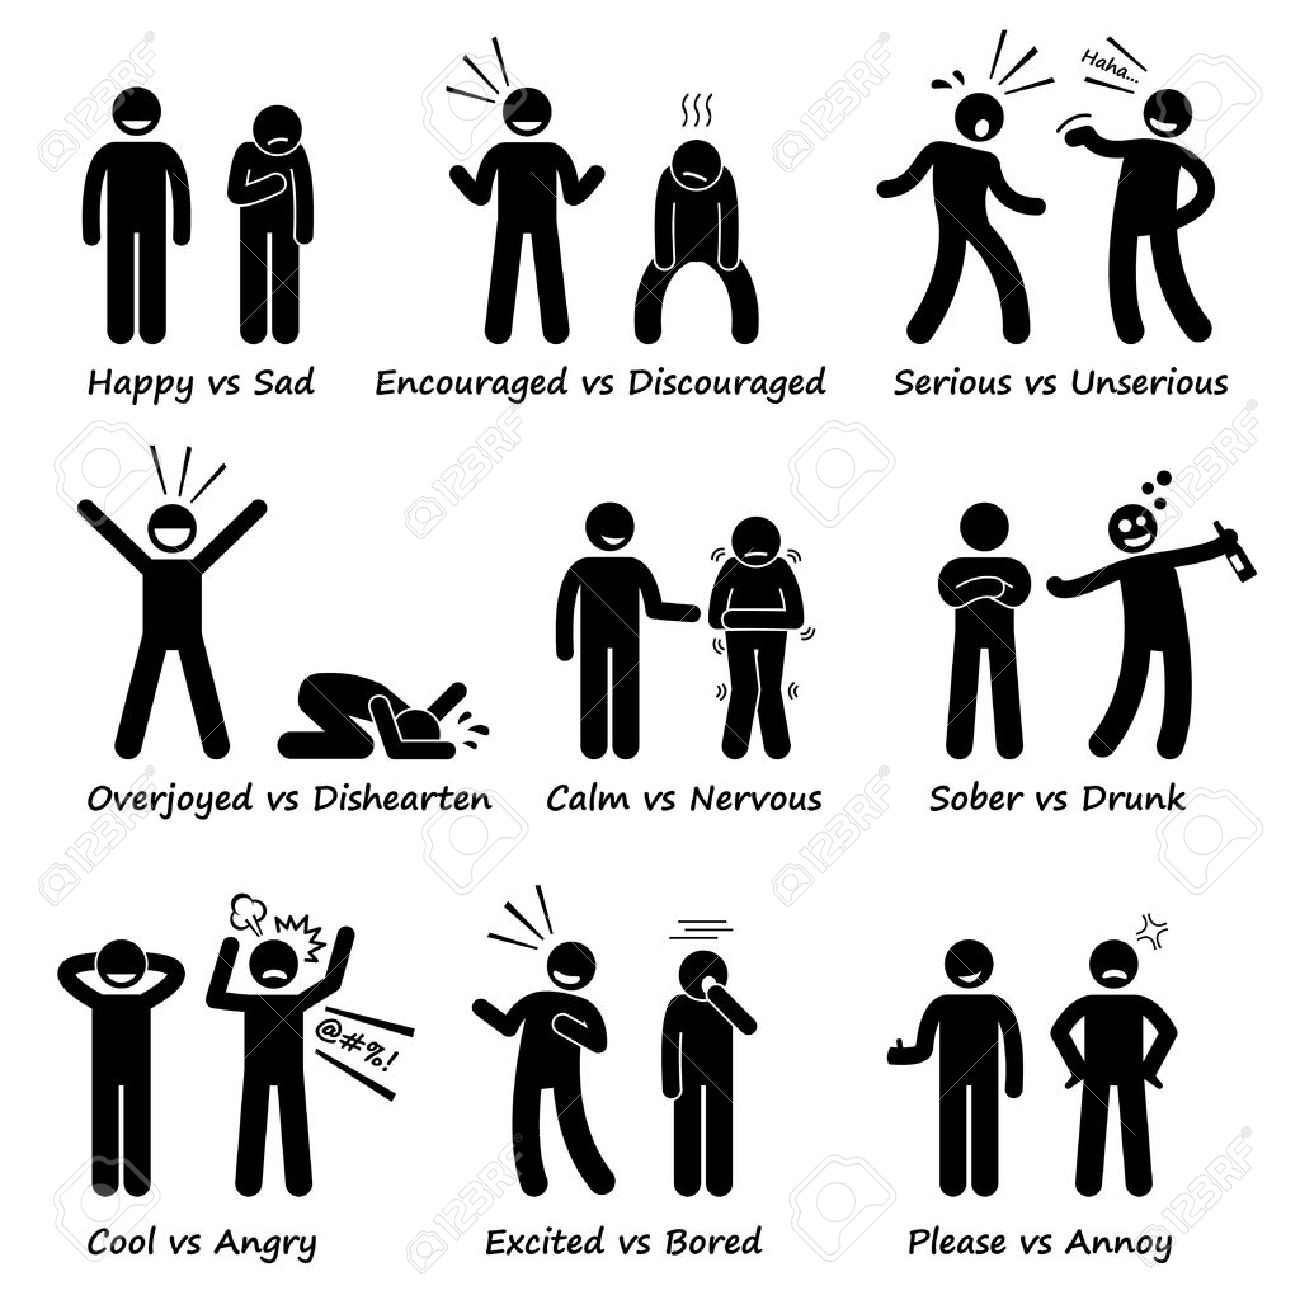 Opposite Feeling Emotions Positive vs Negative Actions Stick Figure Pictogram Icons - 44486630